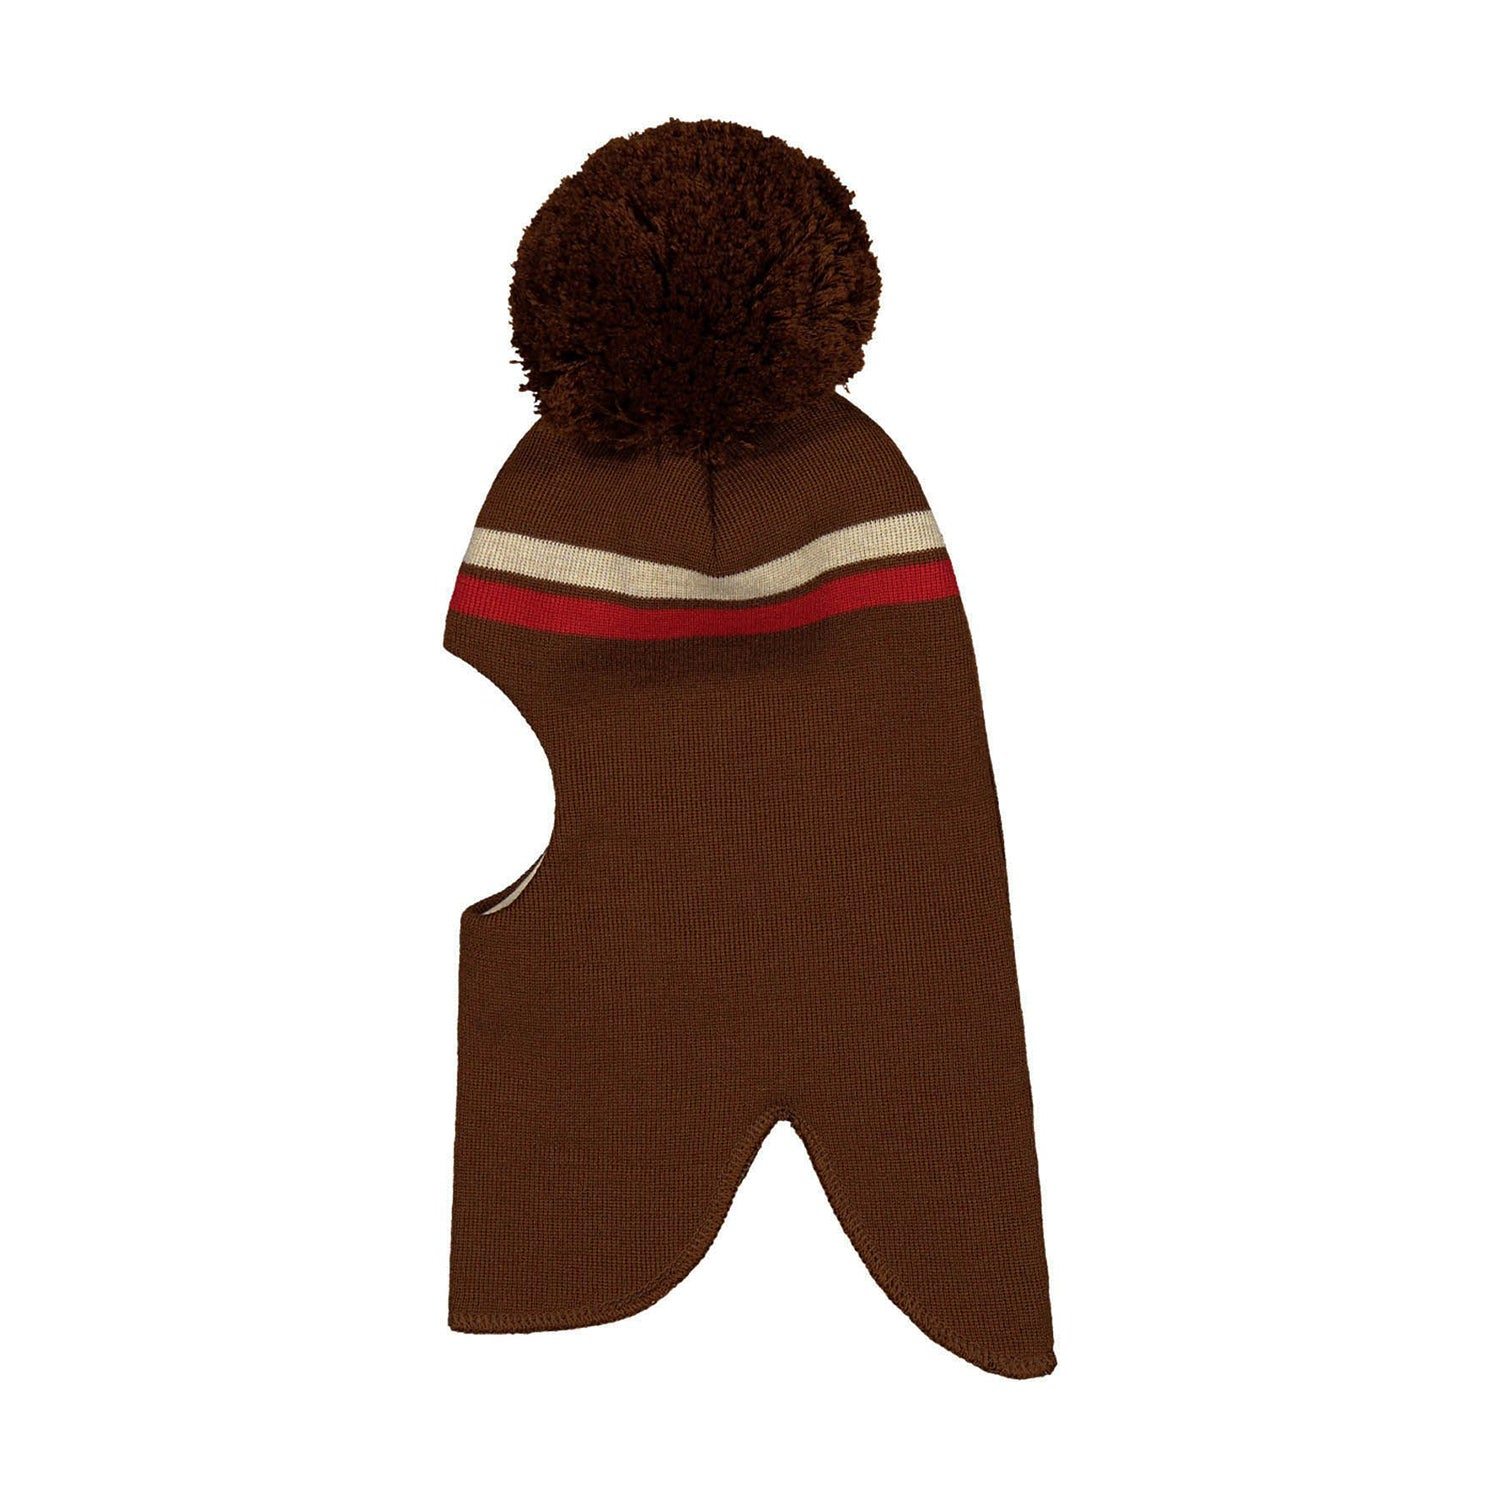 Mainio stripes balaclava merinovilla pipo, brown